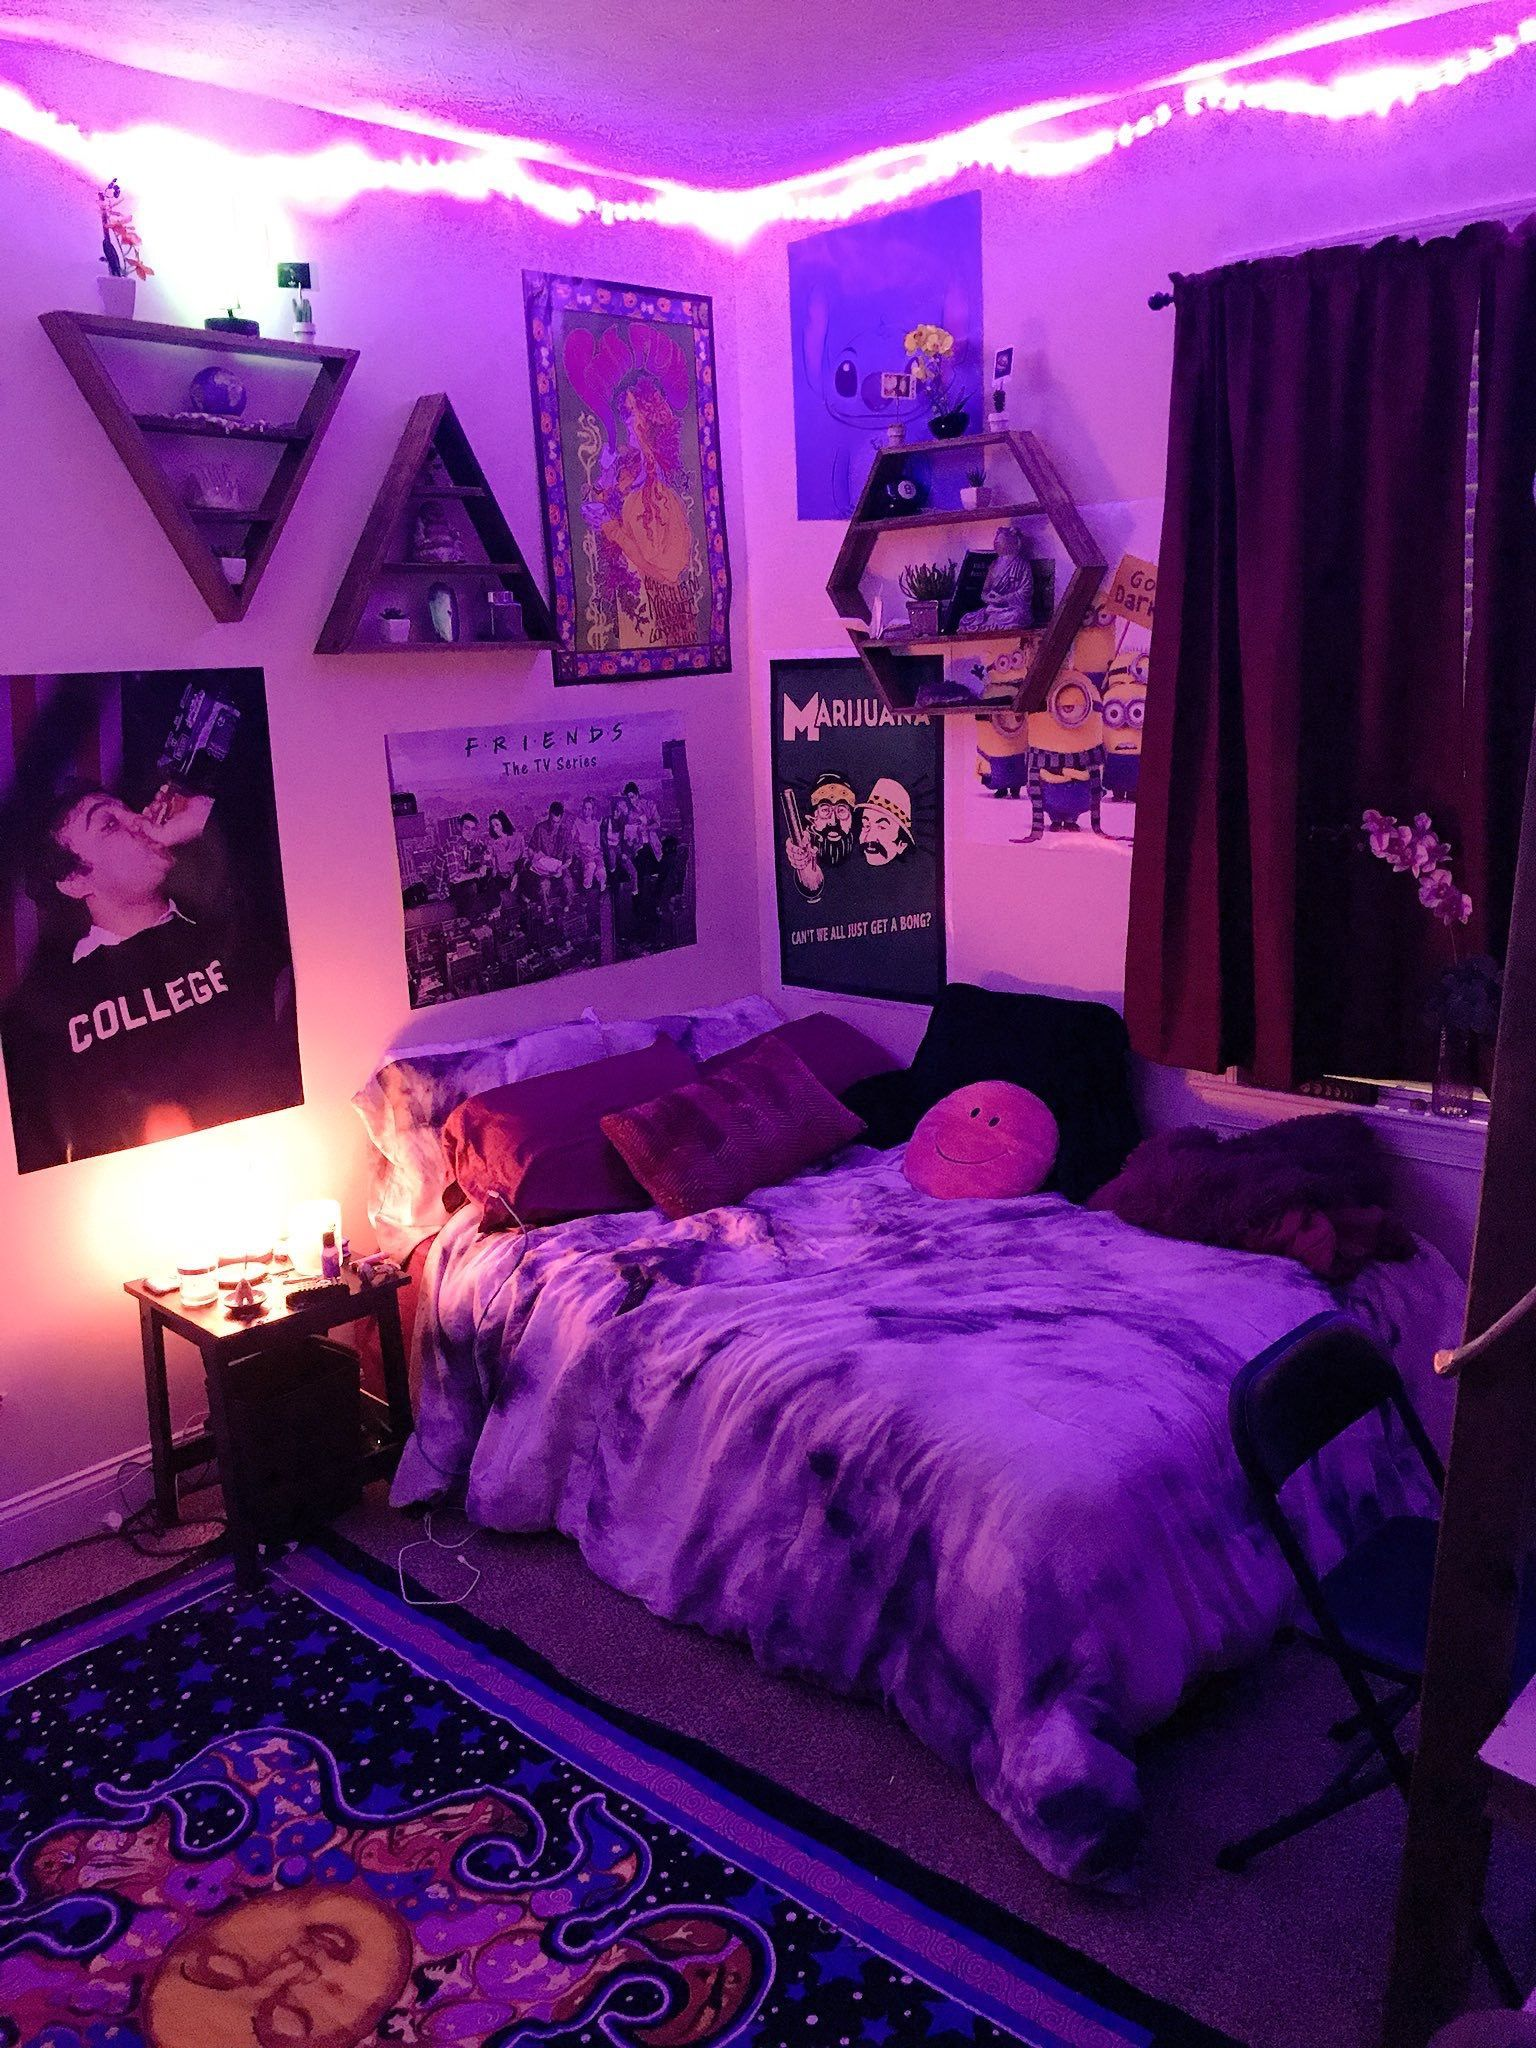 Hipster college apartment, perfect to vibe! в 2020 г